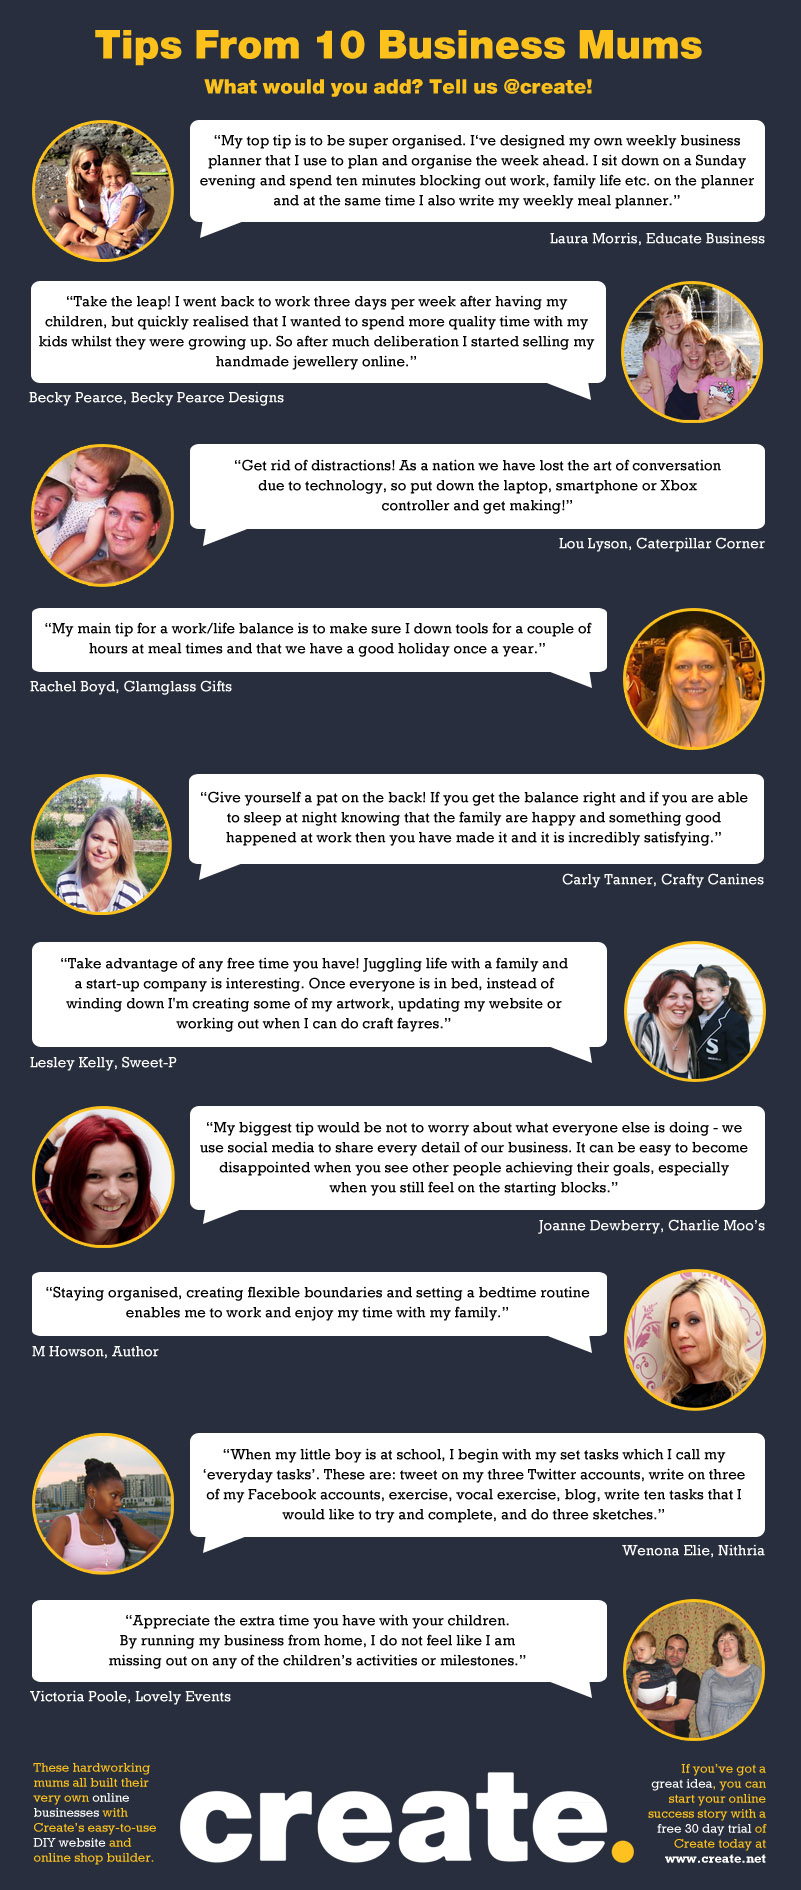 Tips From 10 Business Mums - INFOGRAPHIC